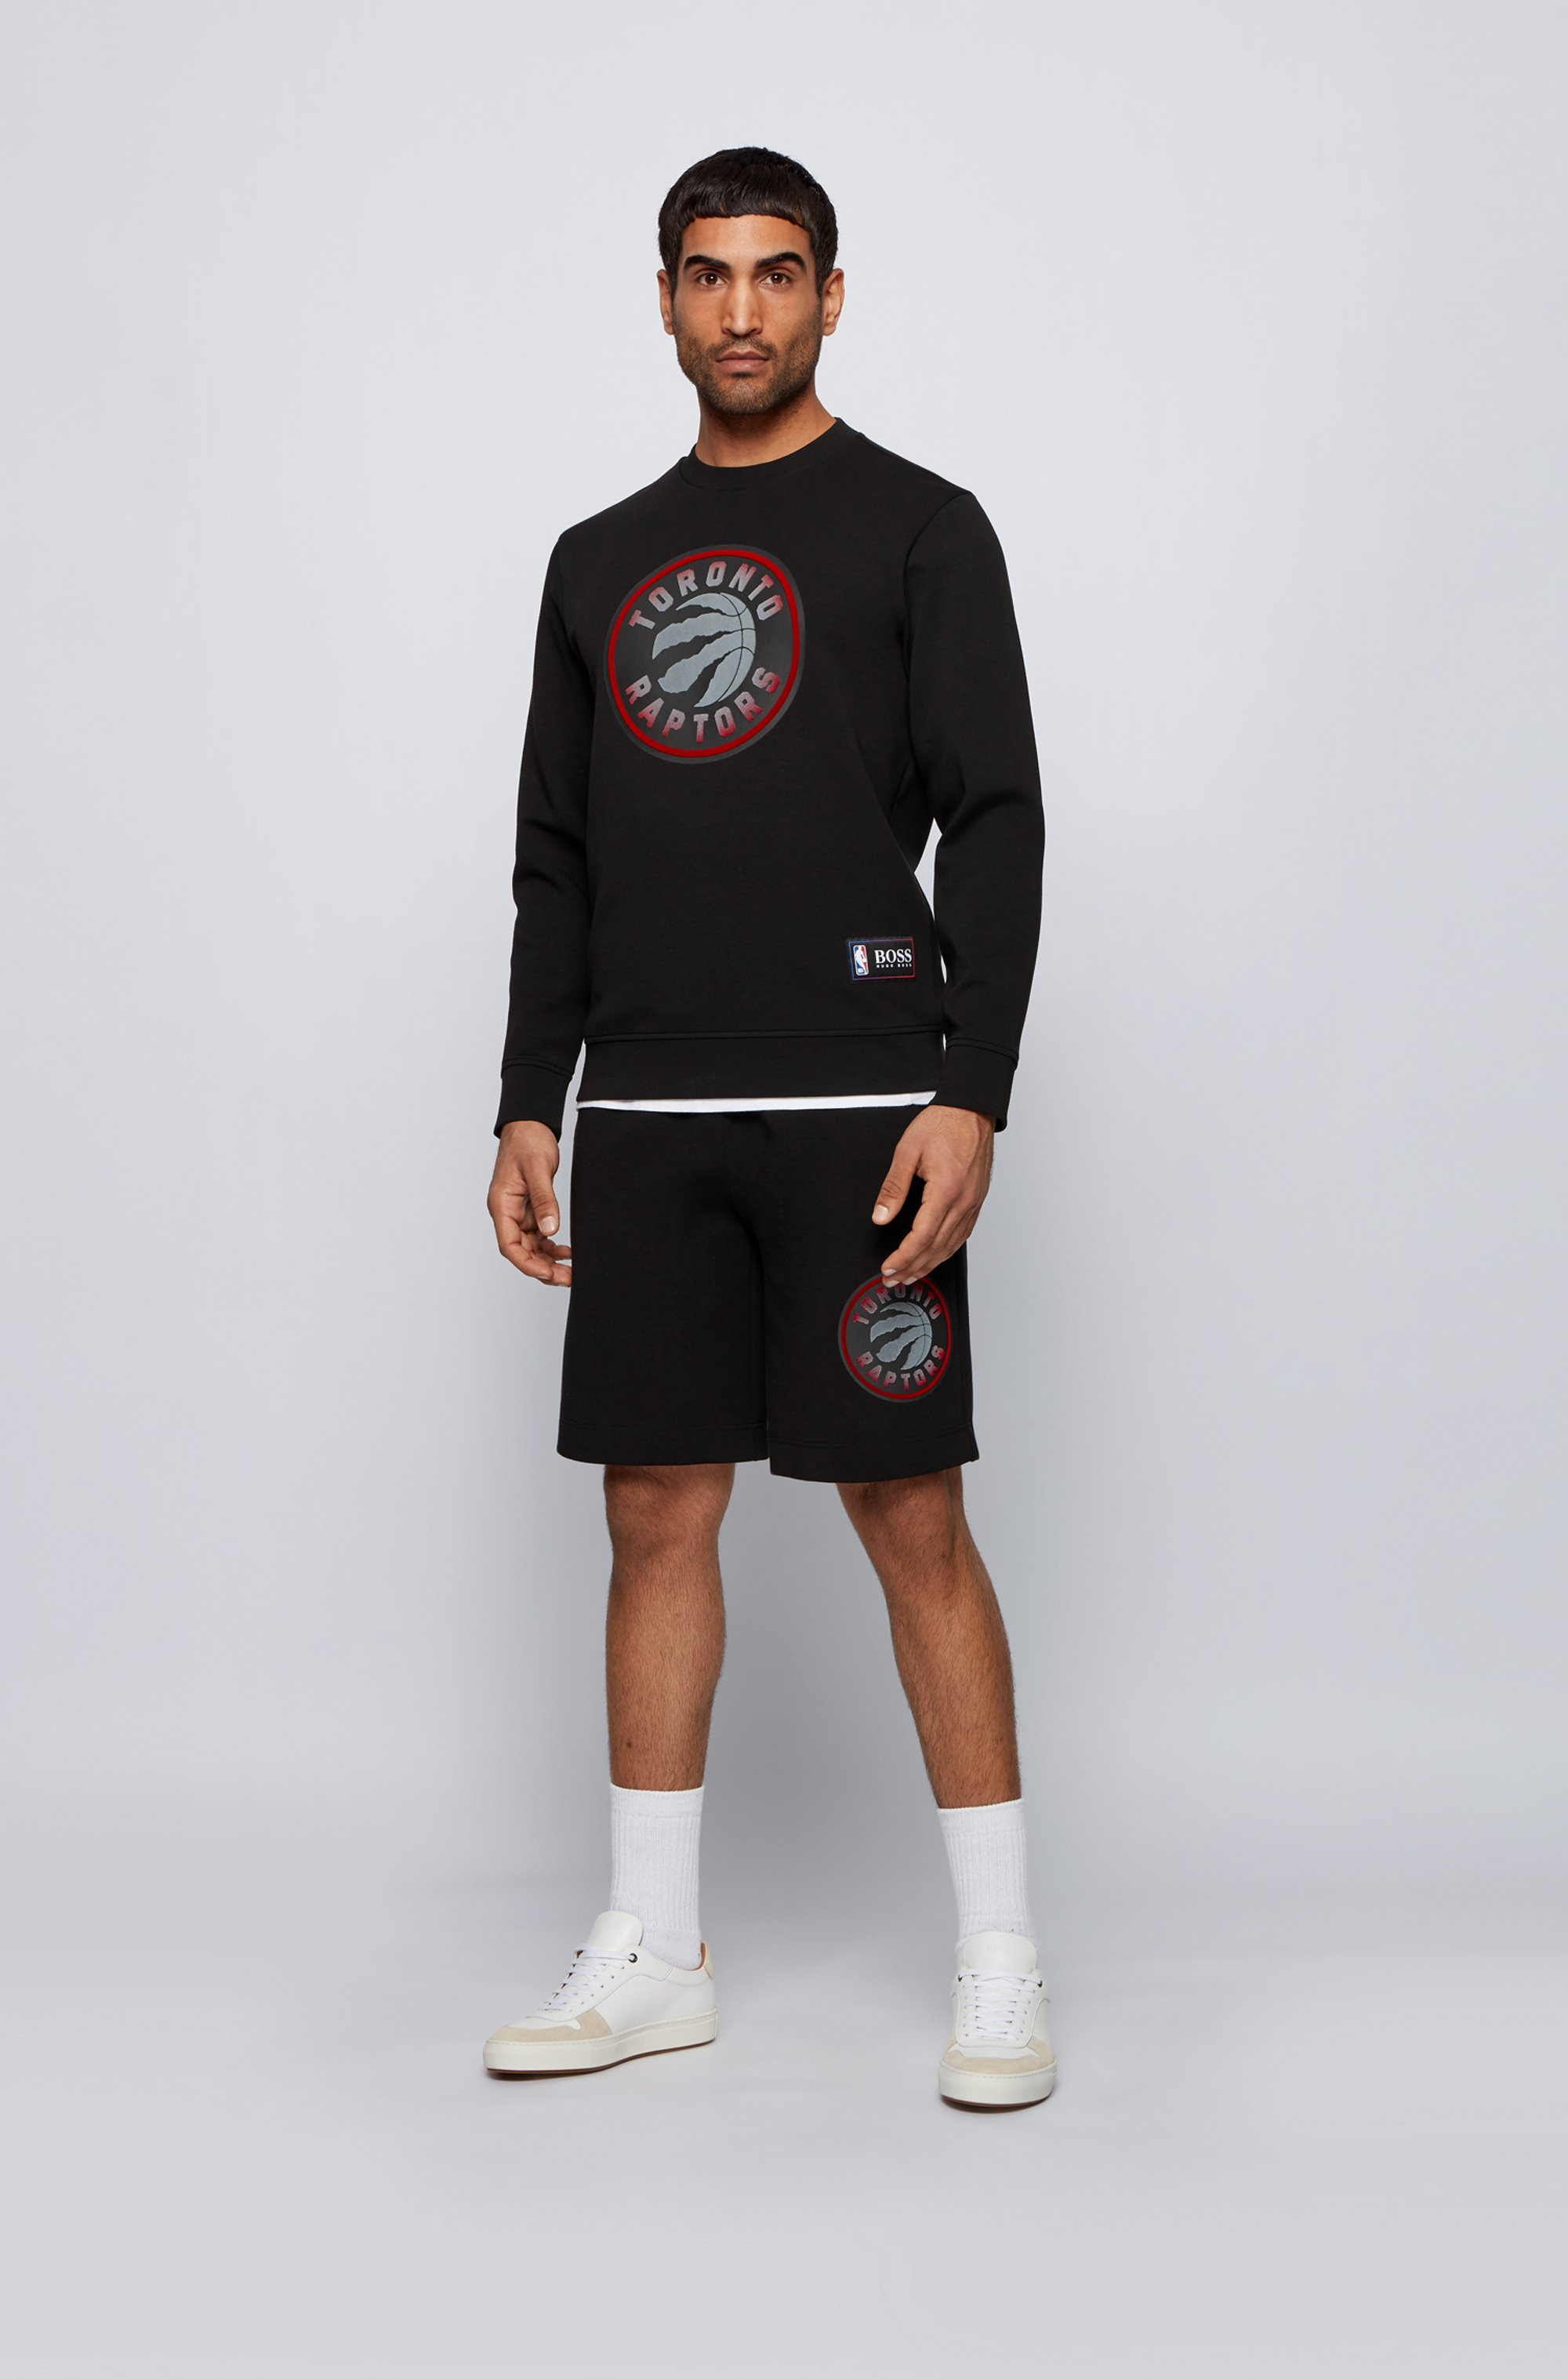 BOSS x NBA drawstring shorts with team logo